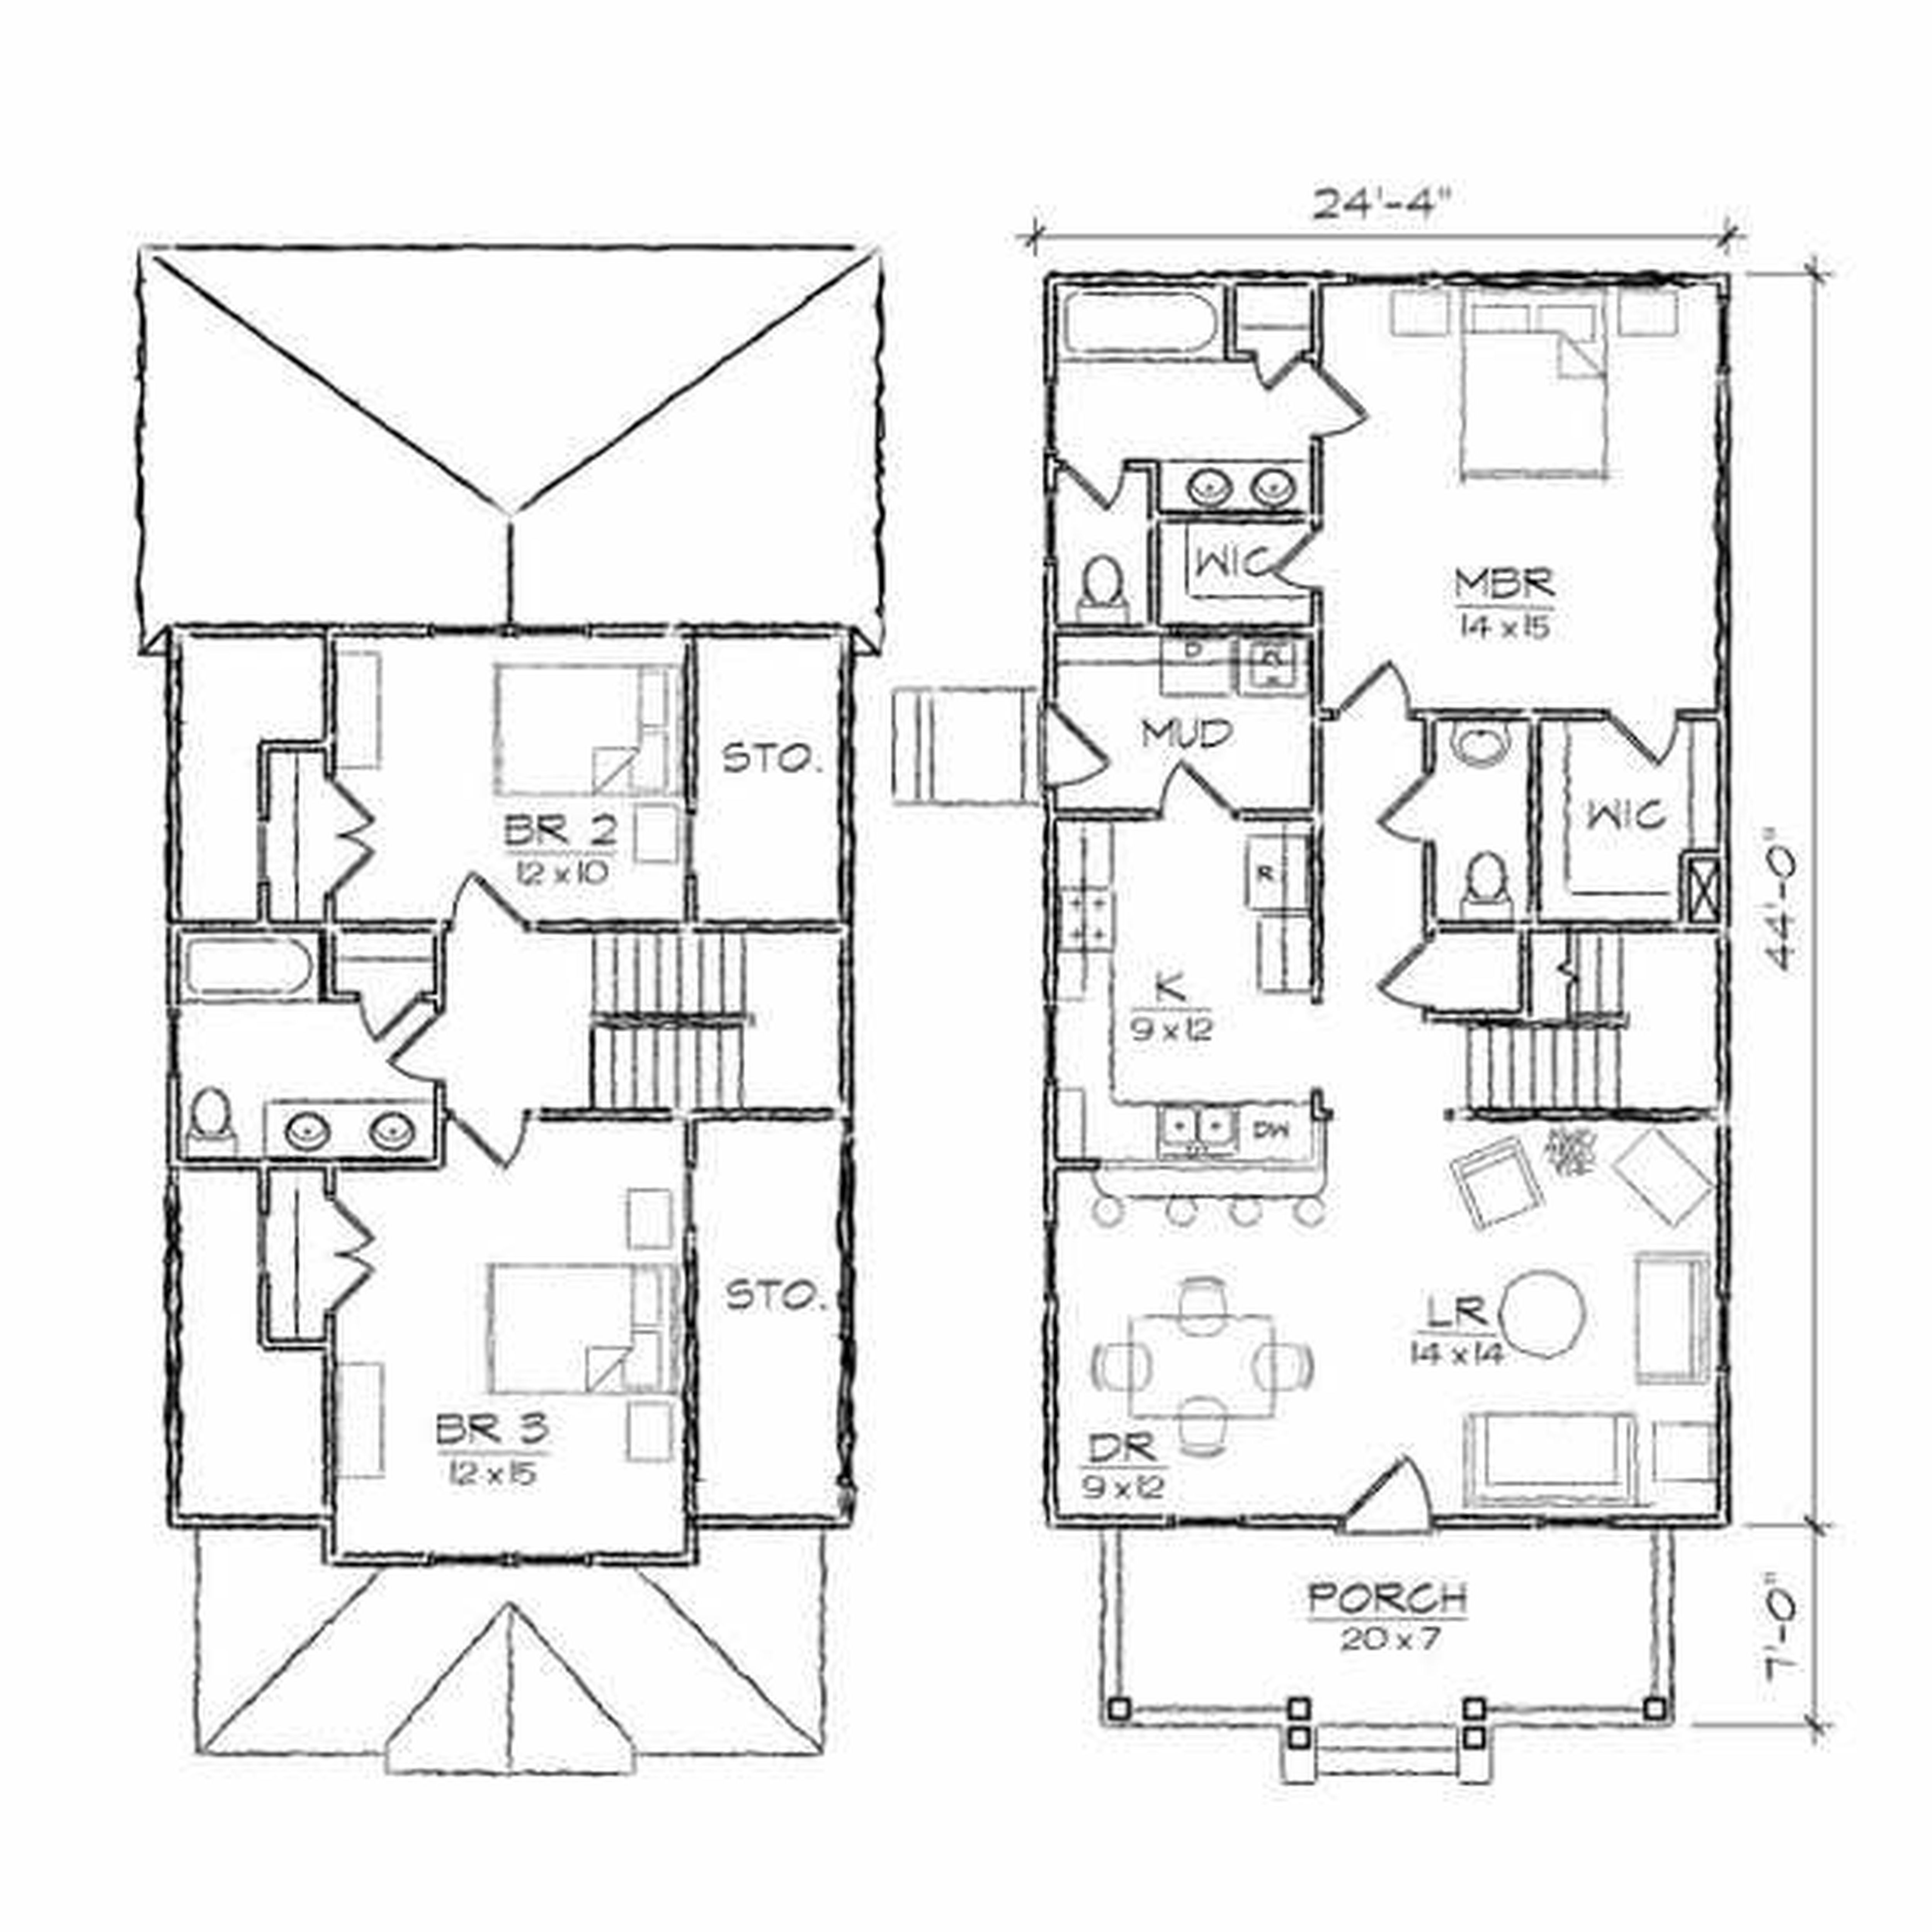 House building drawing at free for for Building drawing online